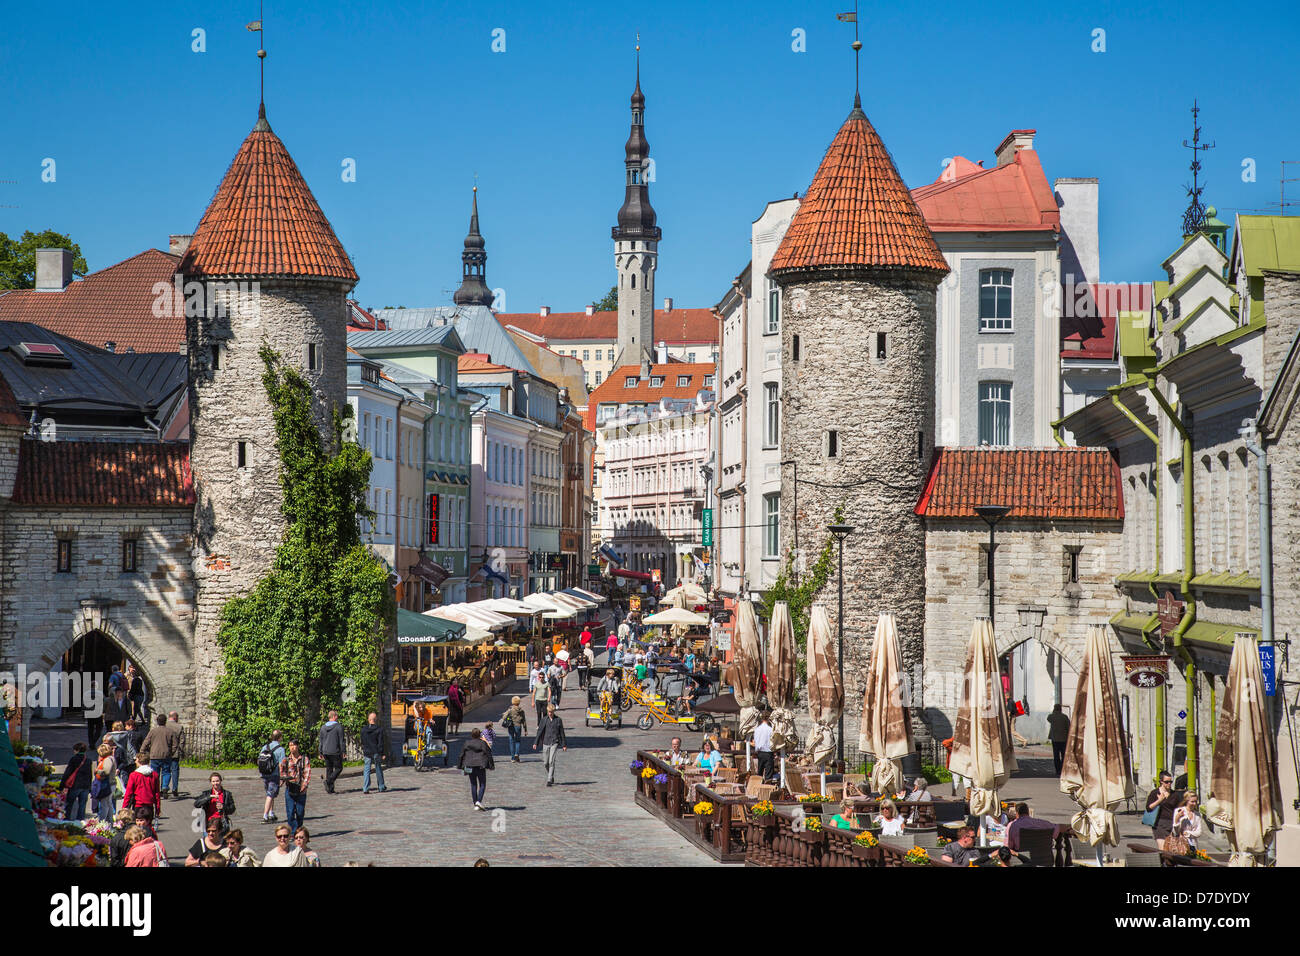 Tallinn old town, Estonia, Viru Street and towers of medieval Viru Gate - Stock Image